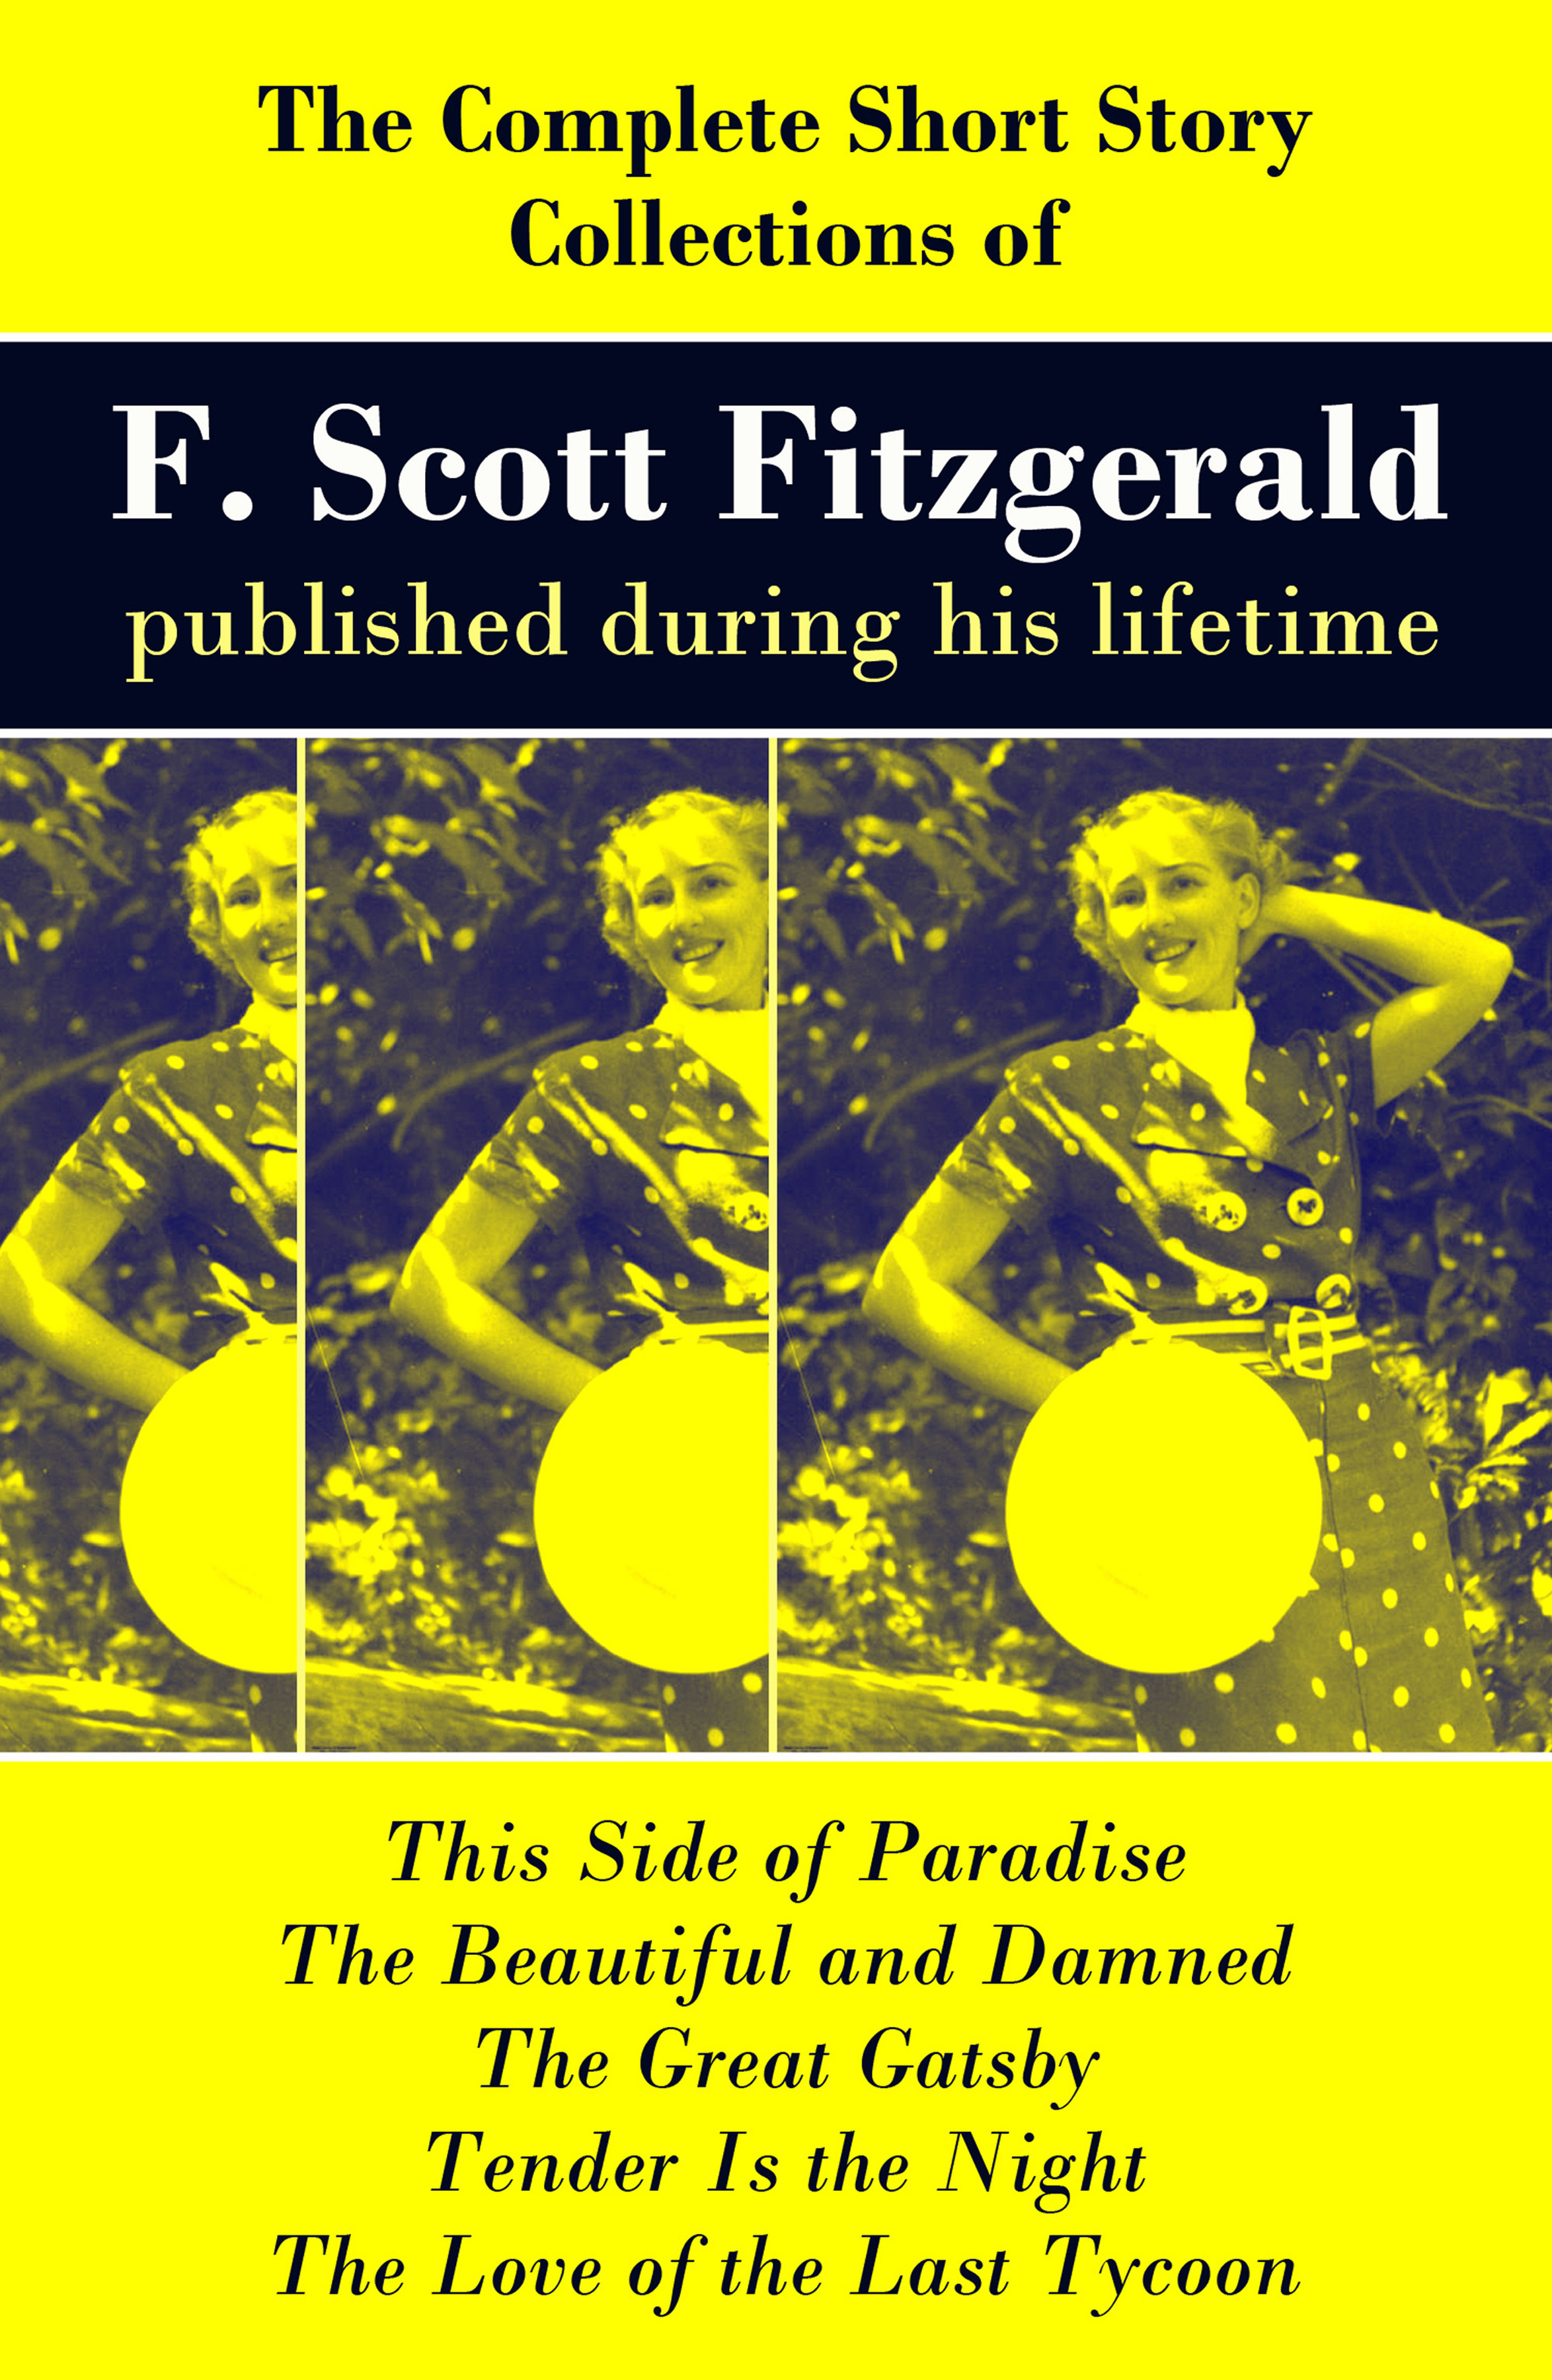 цена на Фрэнсис Скотт Фицджеральд The Complete Short Story Collections of F. Scott Fitzgerald published during his lifetime: Flappers and Philosophers + Tales of the Jazz Age + All the Sad Young Men + Taps at Reveille